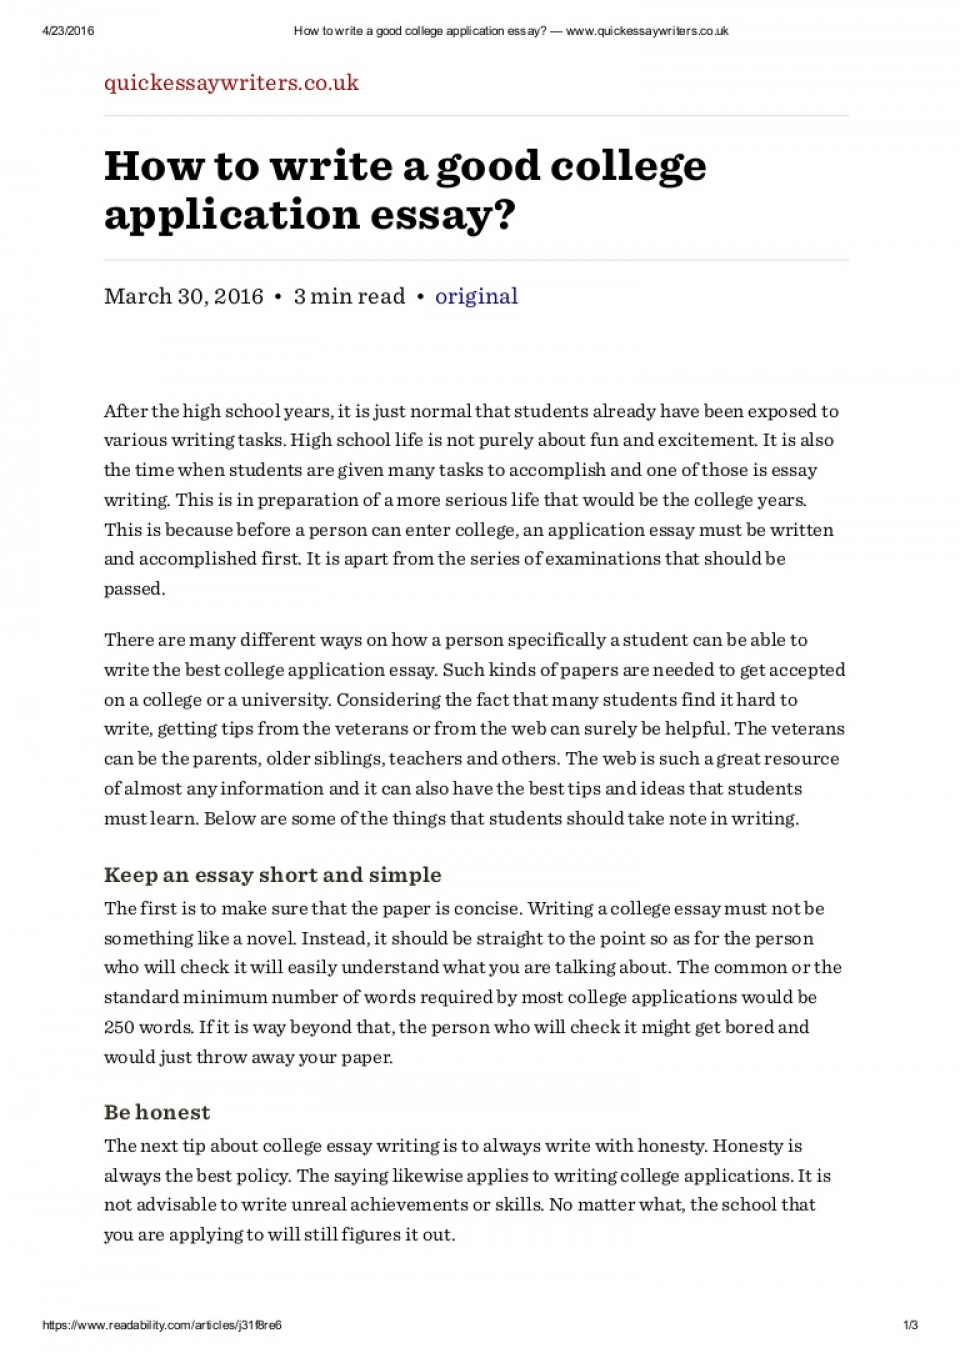 009 Howtowriteagoodcollegeapplicationessaywww Thumbnail Essay Example Writing College Rare A Application Topics To Write On Tips For About Yourself 960